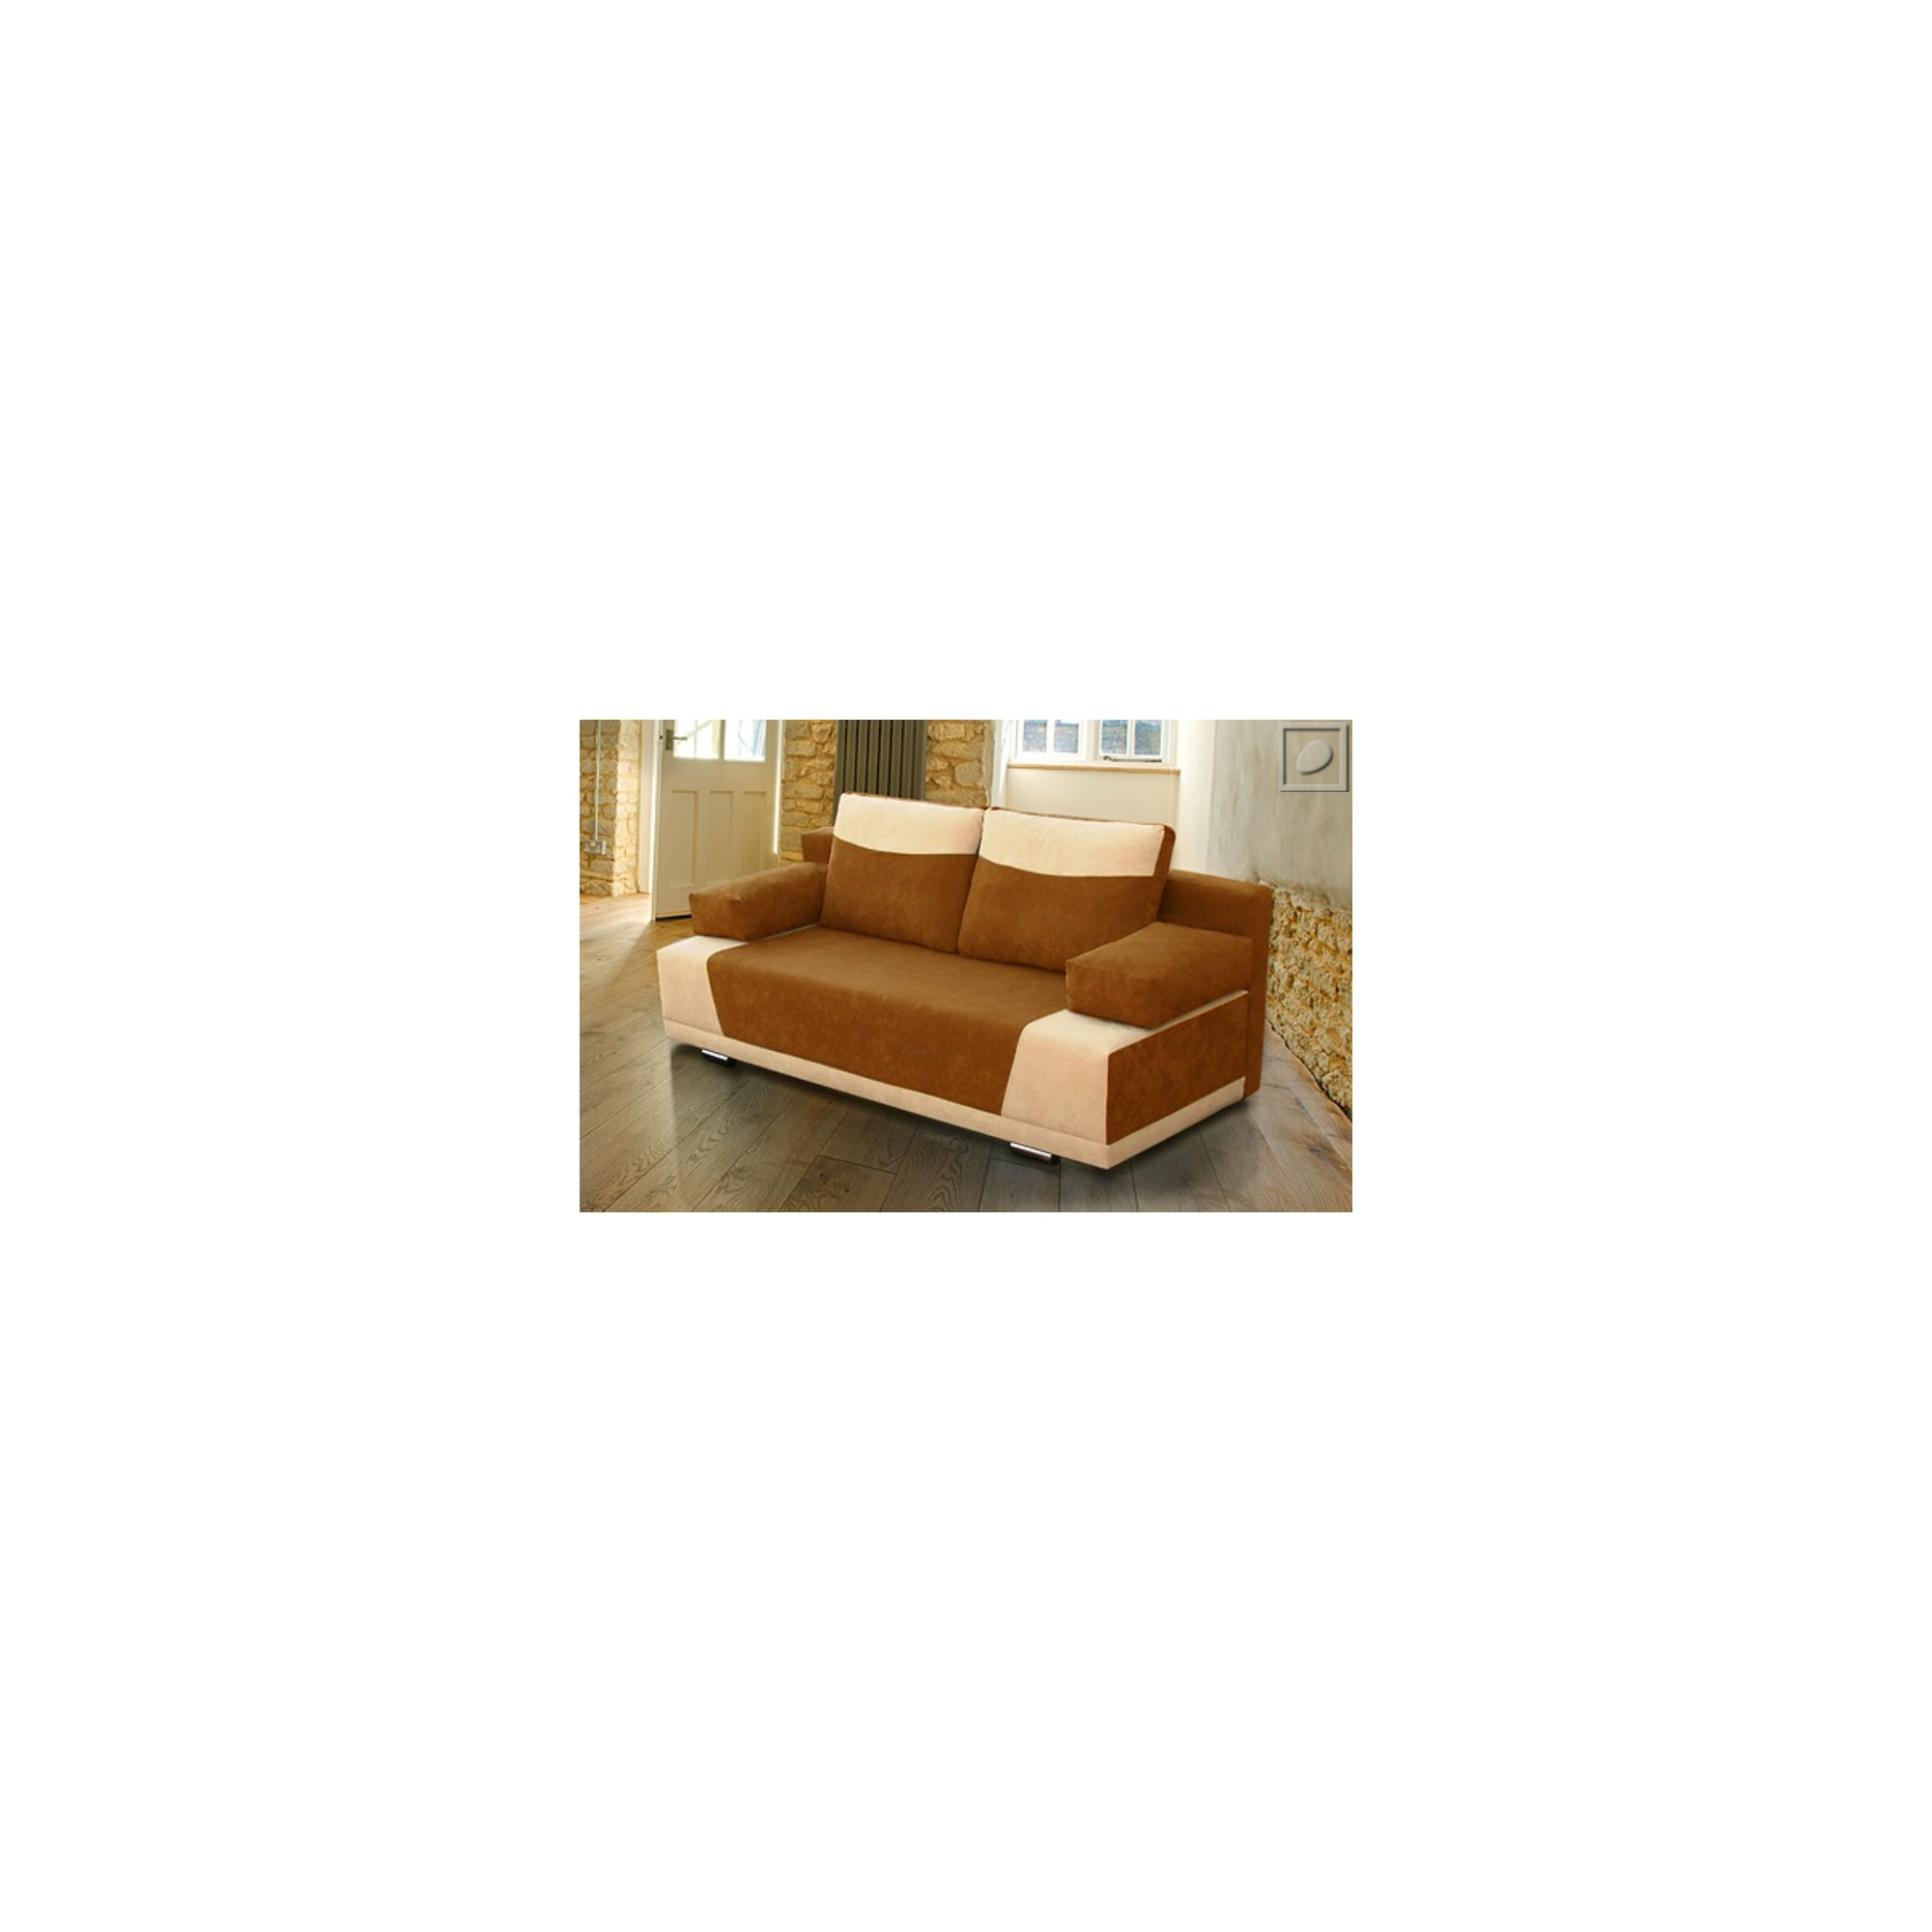 Quality Sofa Scotland Modern Sofa Bed With Storage Almond Furniture